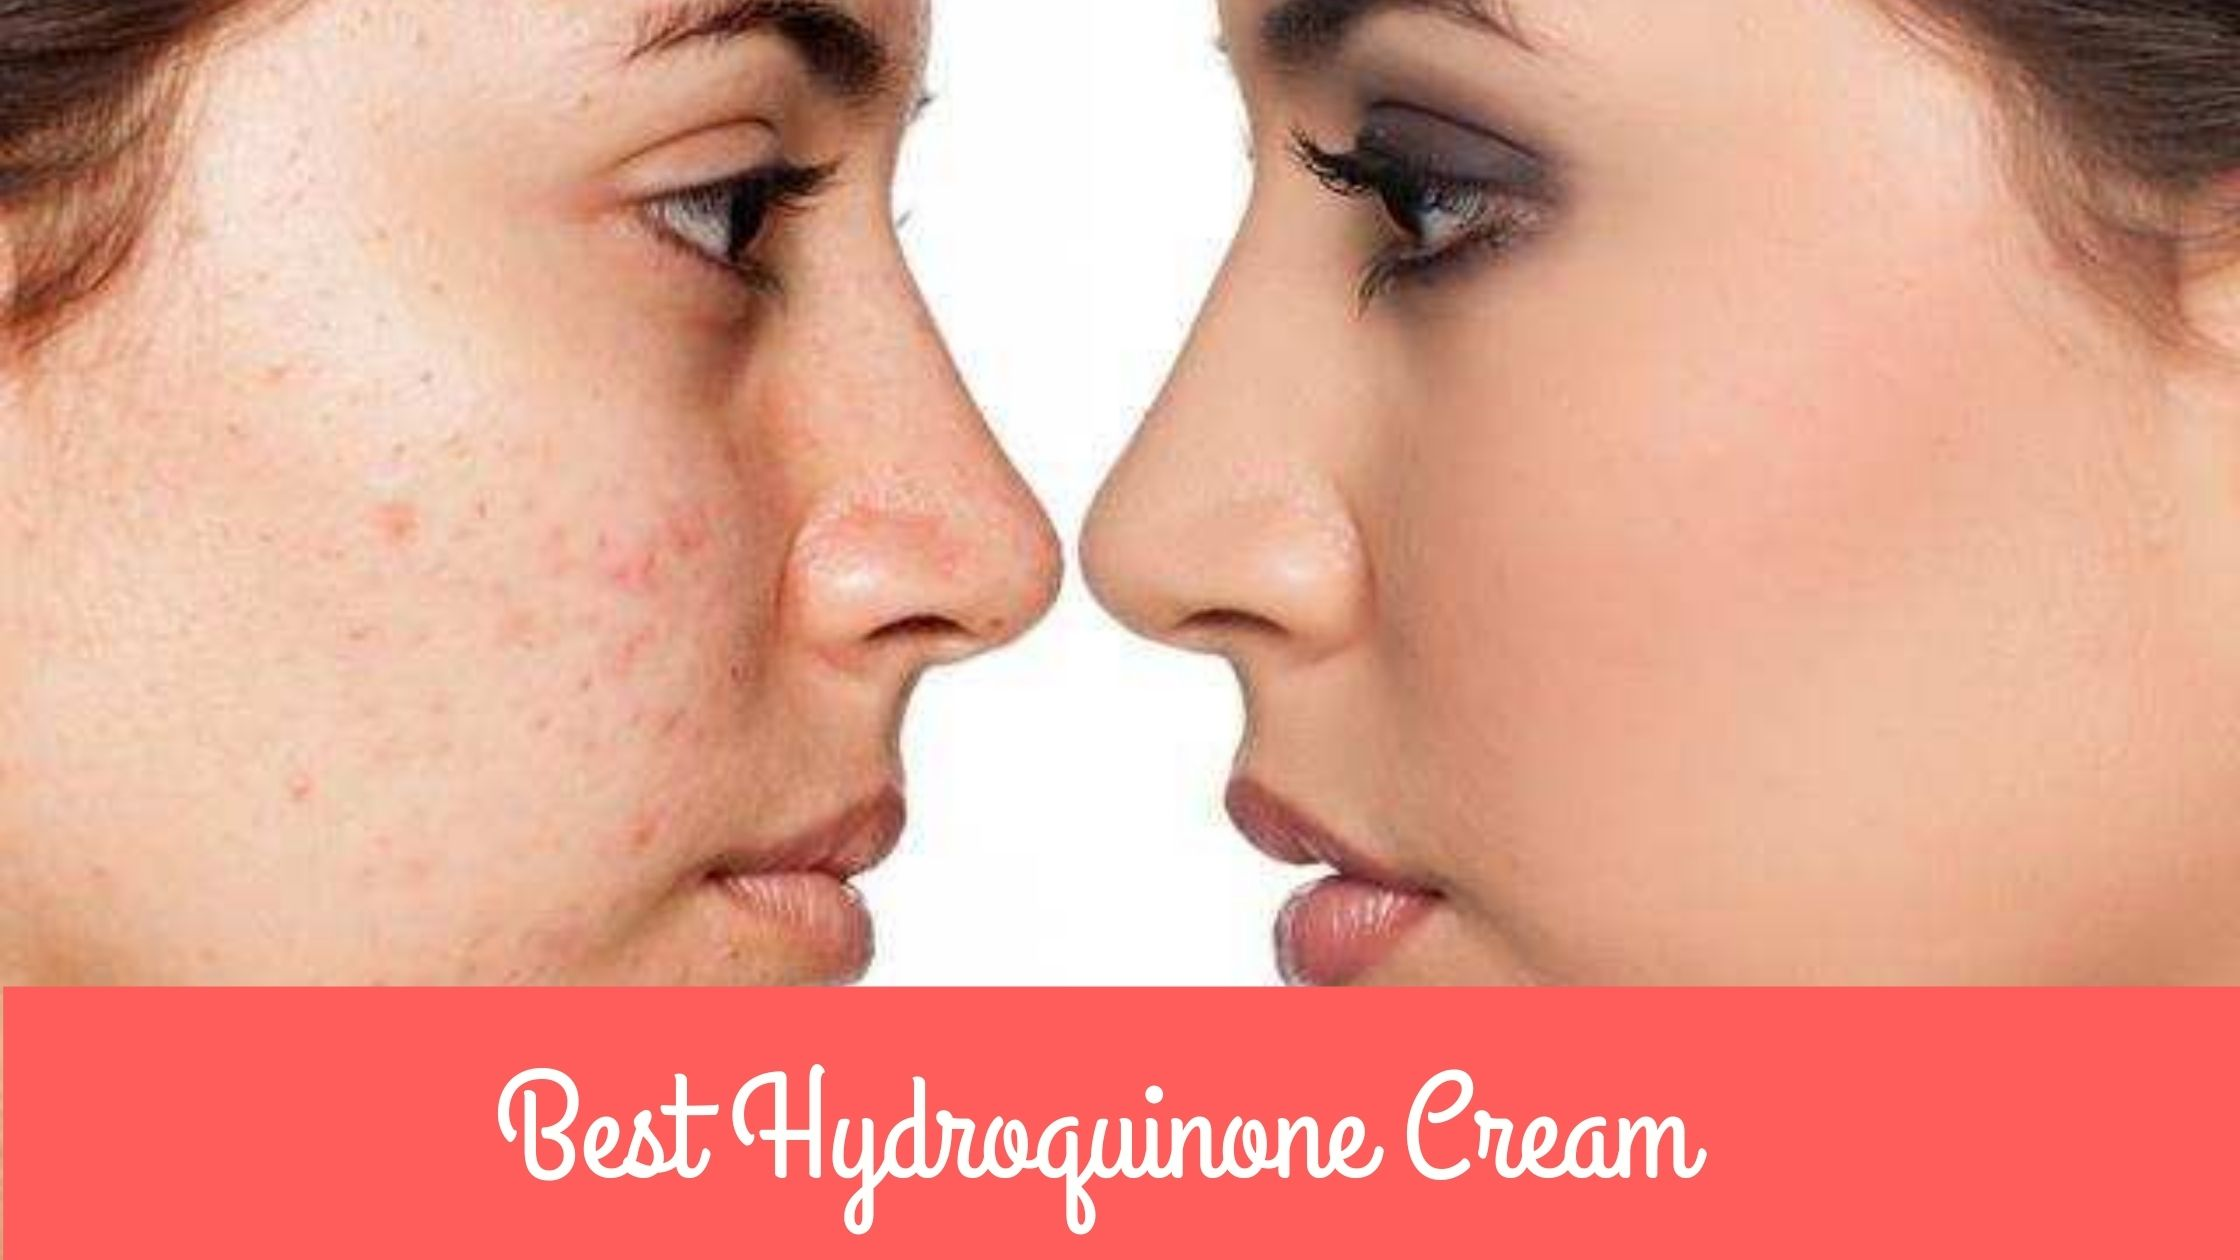 Best Hydroquinone Cream for Skin Bleaching & Uneven Skin Tone